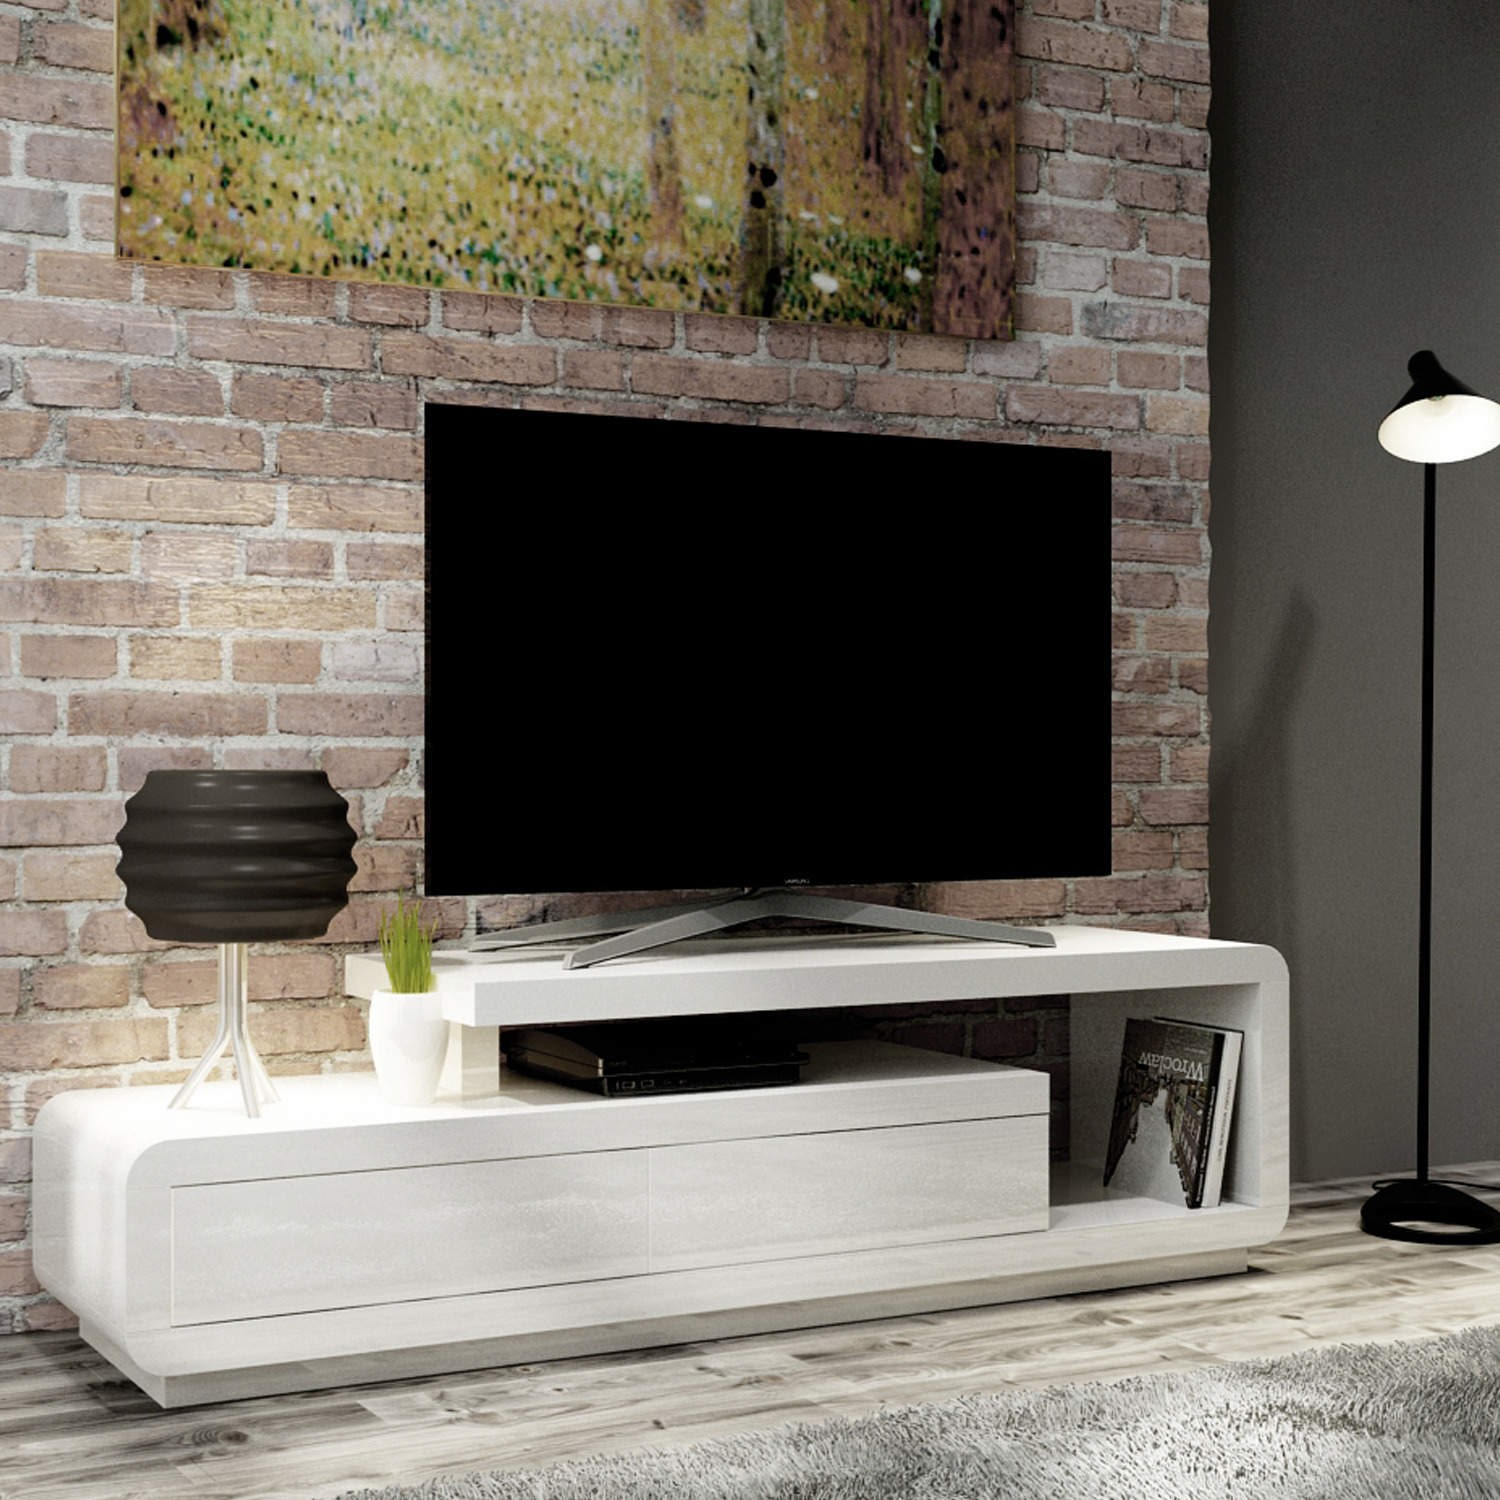 Evoque White High Gloss Tv Unit Stand With Storage Drawers